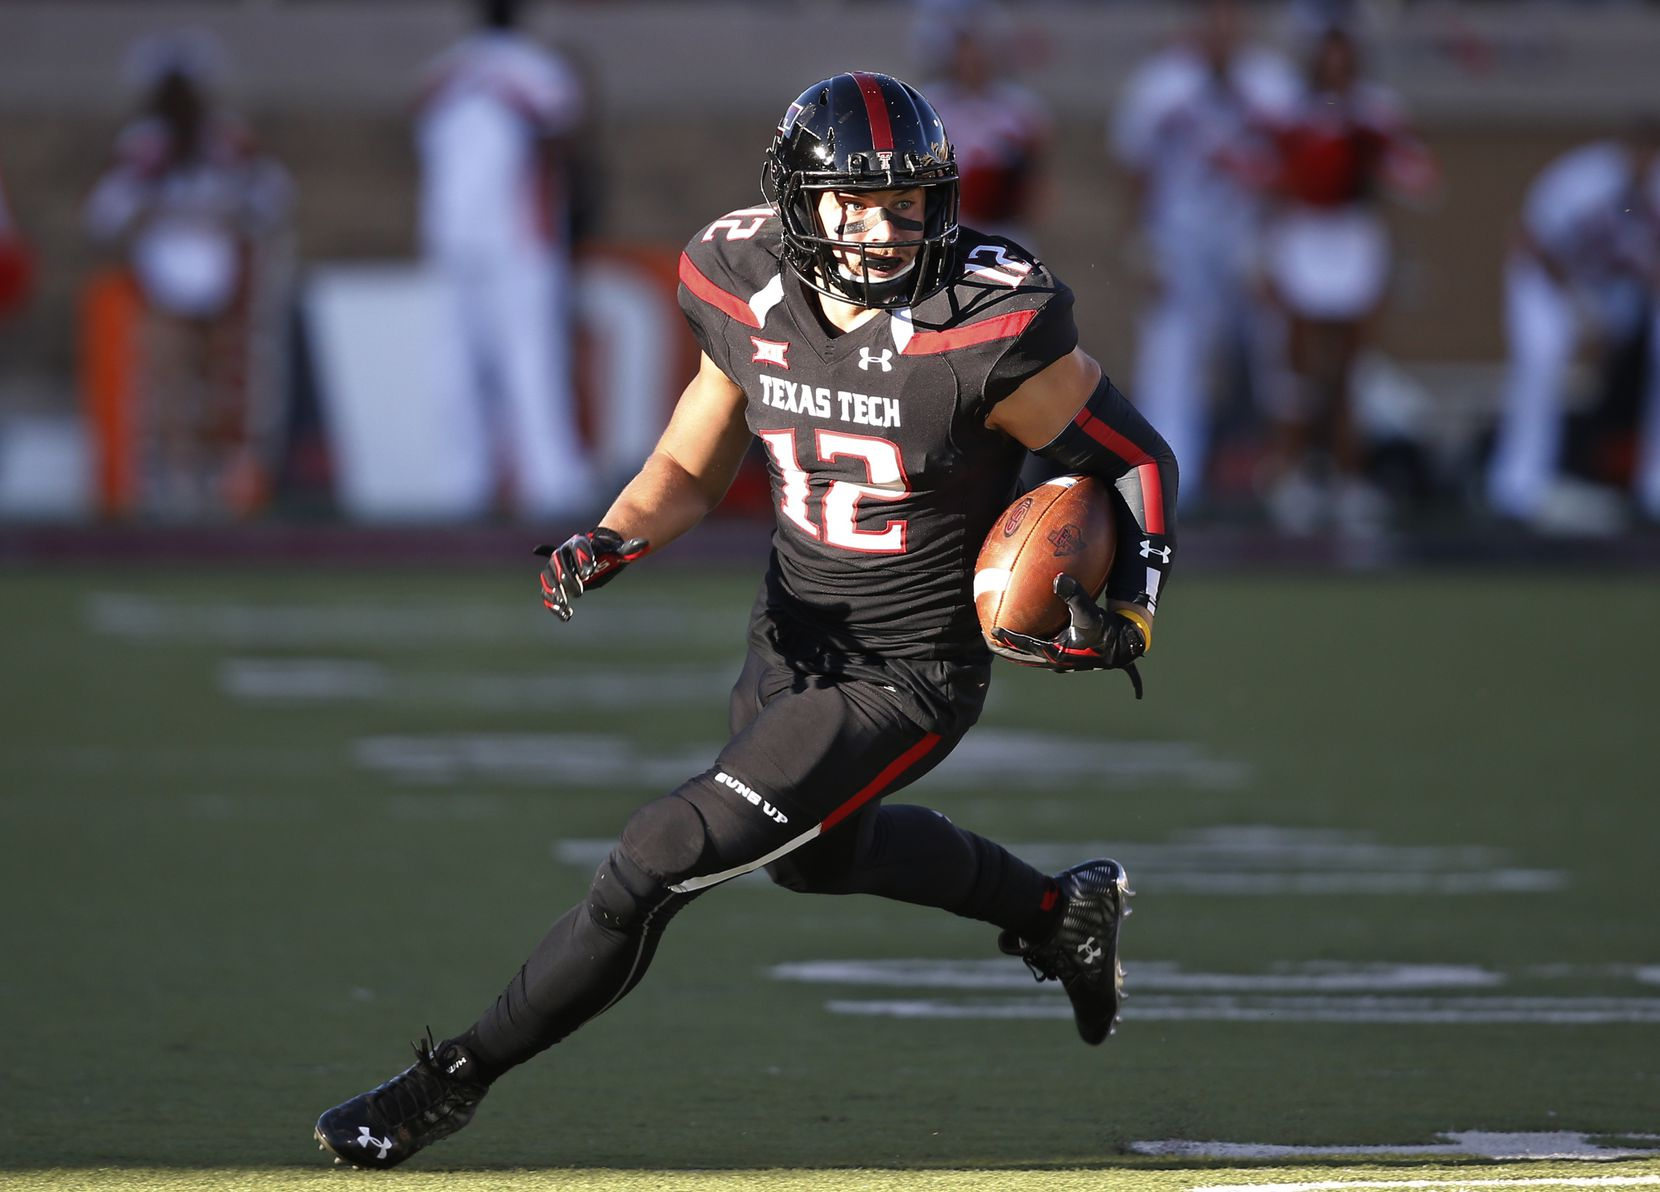 FILE - In this Oct. 31, 2015, file photo, Texas Tech wide receiver Ian Sadler carries the ball during an NCAA college football game against Oklahoma State in Lubbock, Texas. No one is saying Sadler (42 catches for 596 yards and three touchdowns) needs to double his production and make up for what Jakeem Grant did alone. But Mahomes will need reliable slot guys who can turn a short gain into a big one occasionally and either Sadler or Cameron Batson will be asked to fill that role. (AP Photo/Sue Ogrocki, File)